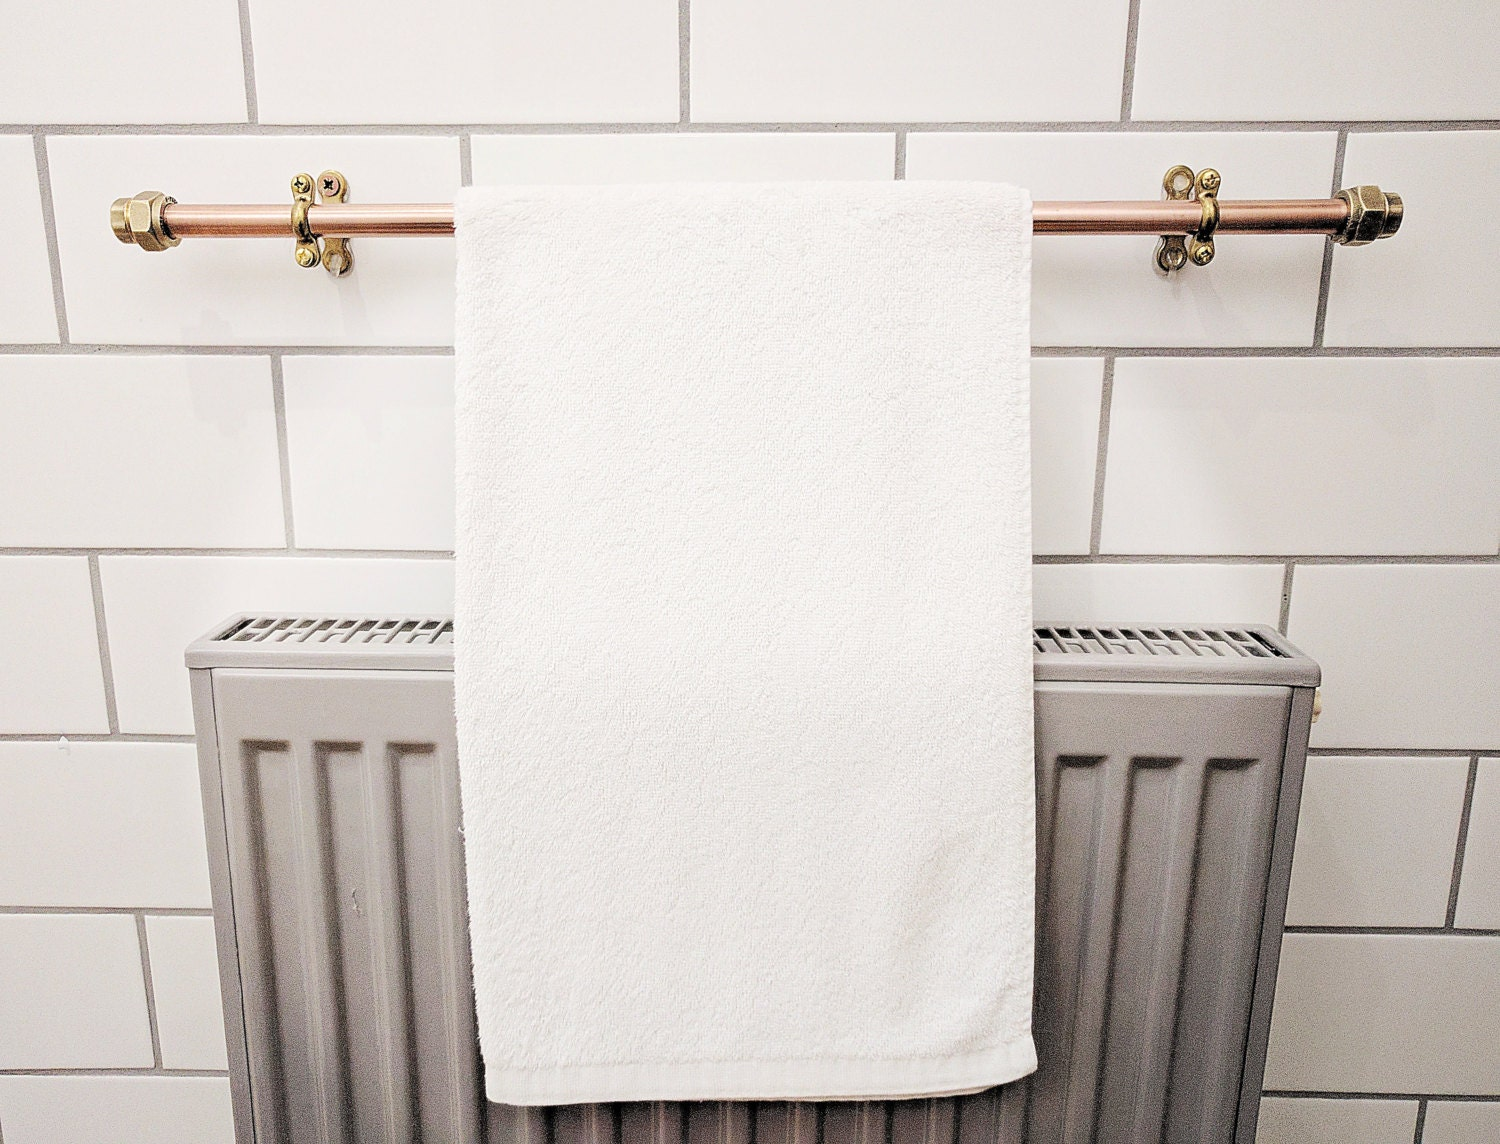 Copper Towel Rack Towel Rail Towel Bar Towel Ring Hand Towel Holder Bath Towel Bathroom Towel Rack Copper Pipe Towel Bar Bathroom Towel Rail